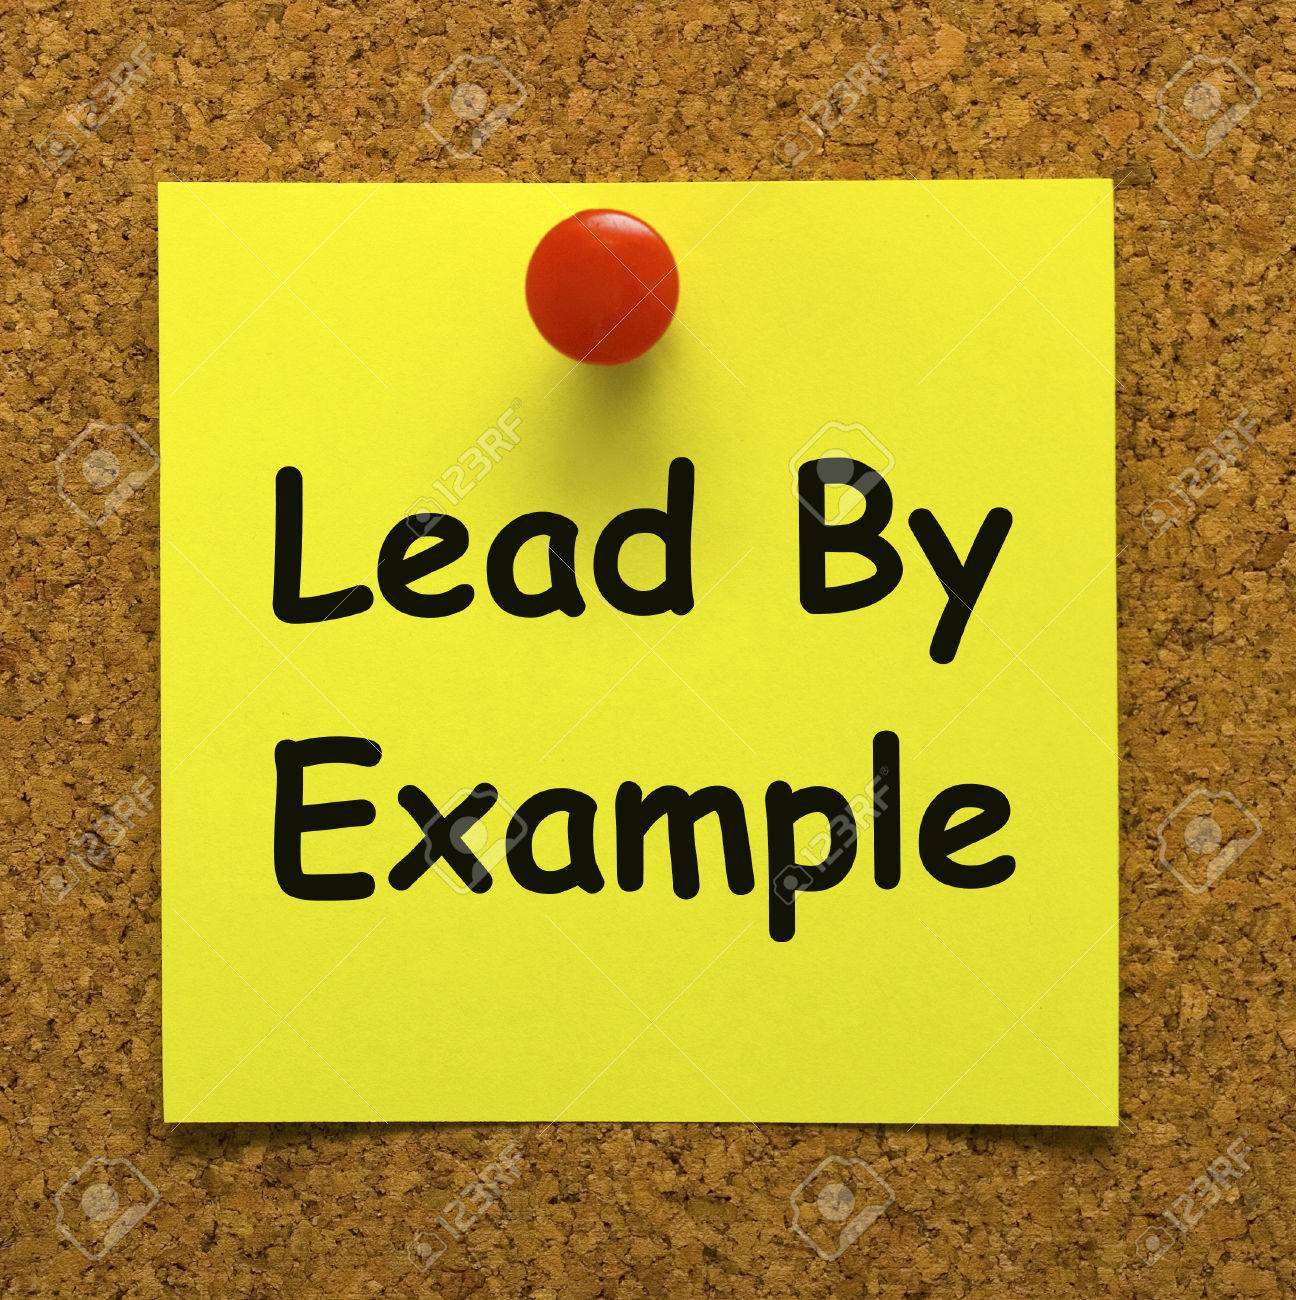 lead by example note meaning mentor and inspire stock photo, picture